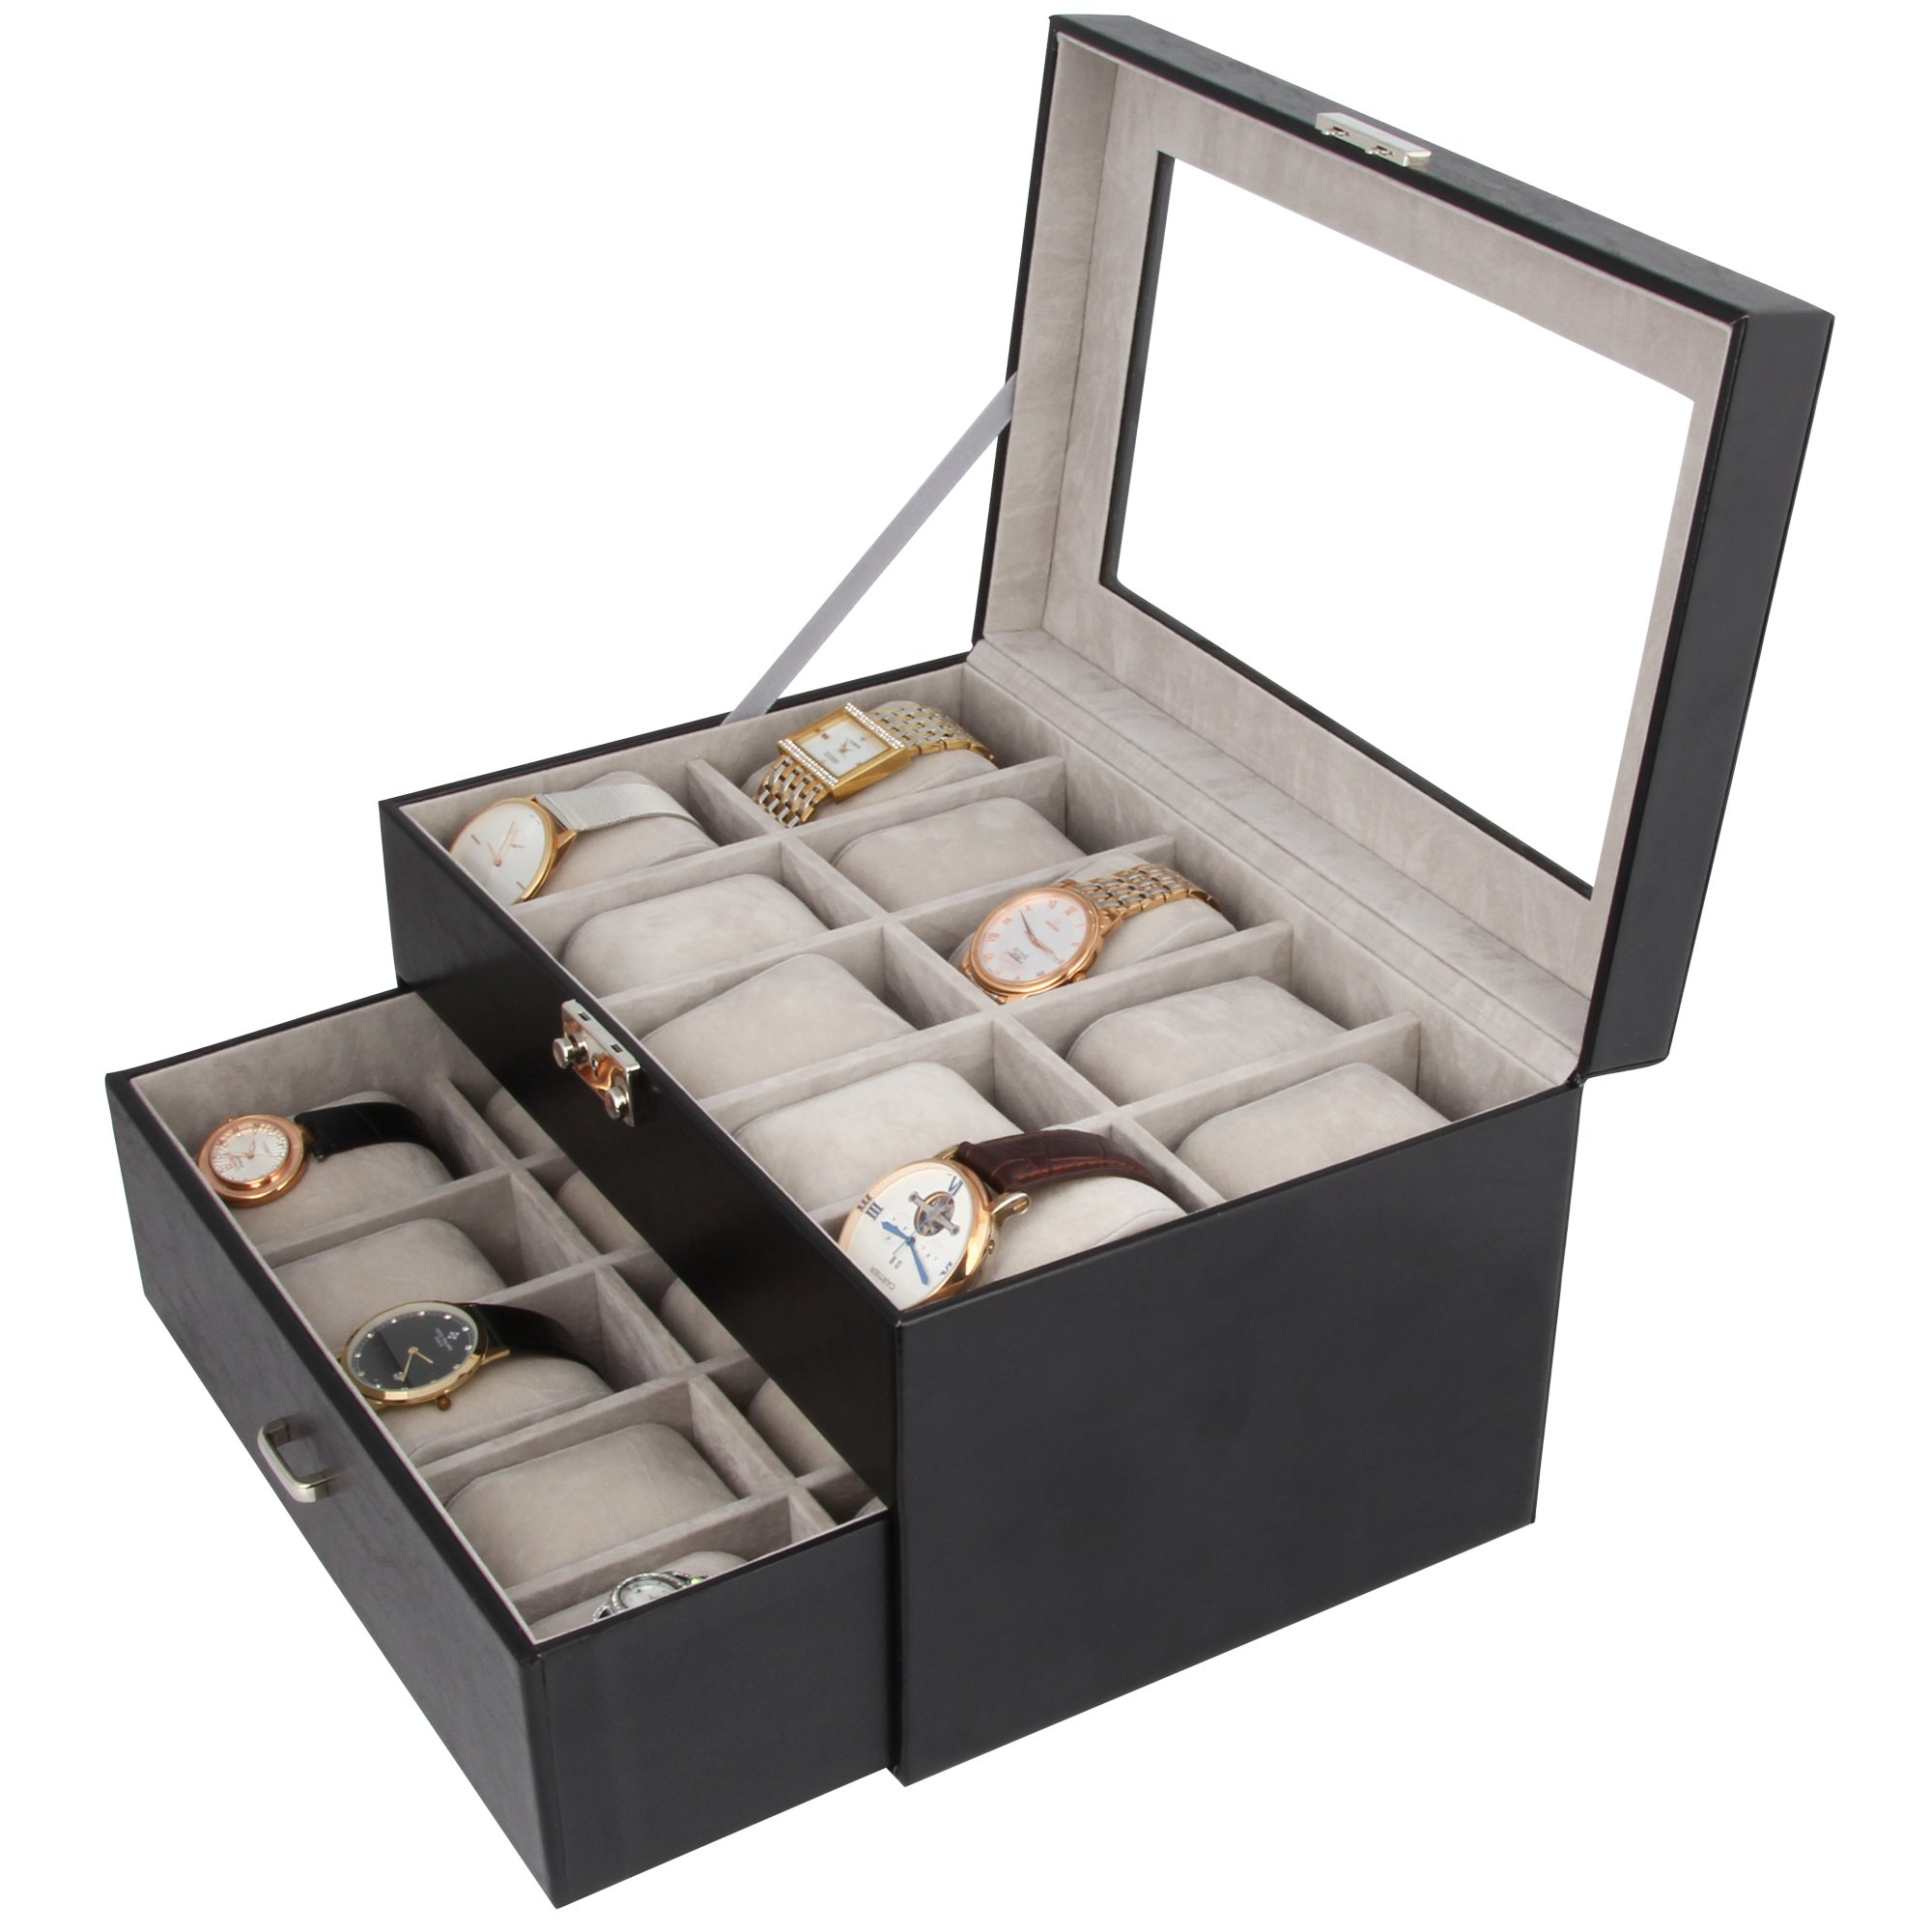 Kendal Watch Case Display Box With Clear Top Holds 20 Watches lock w/key